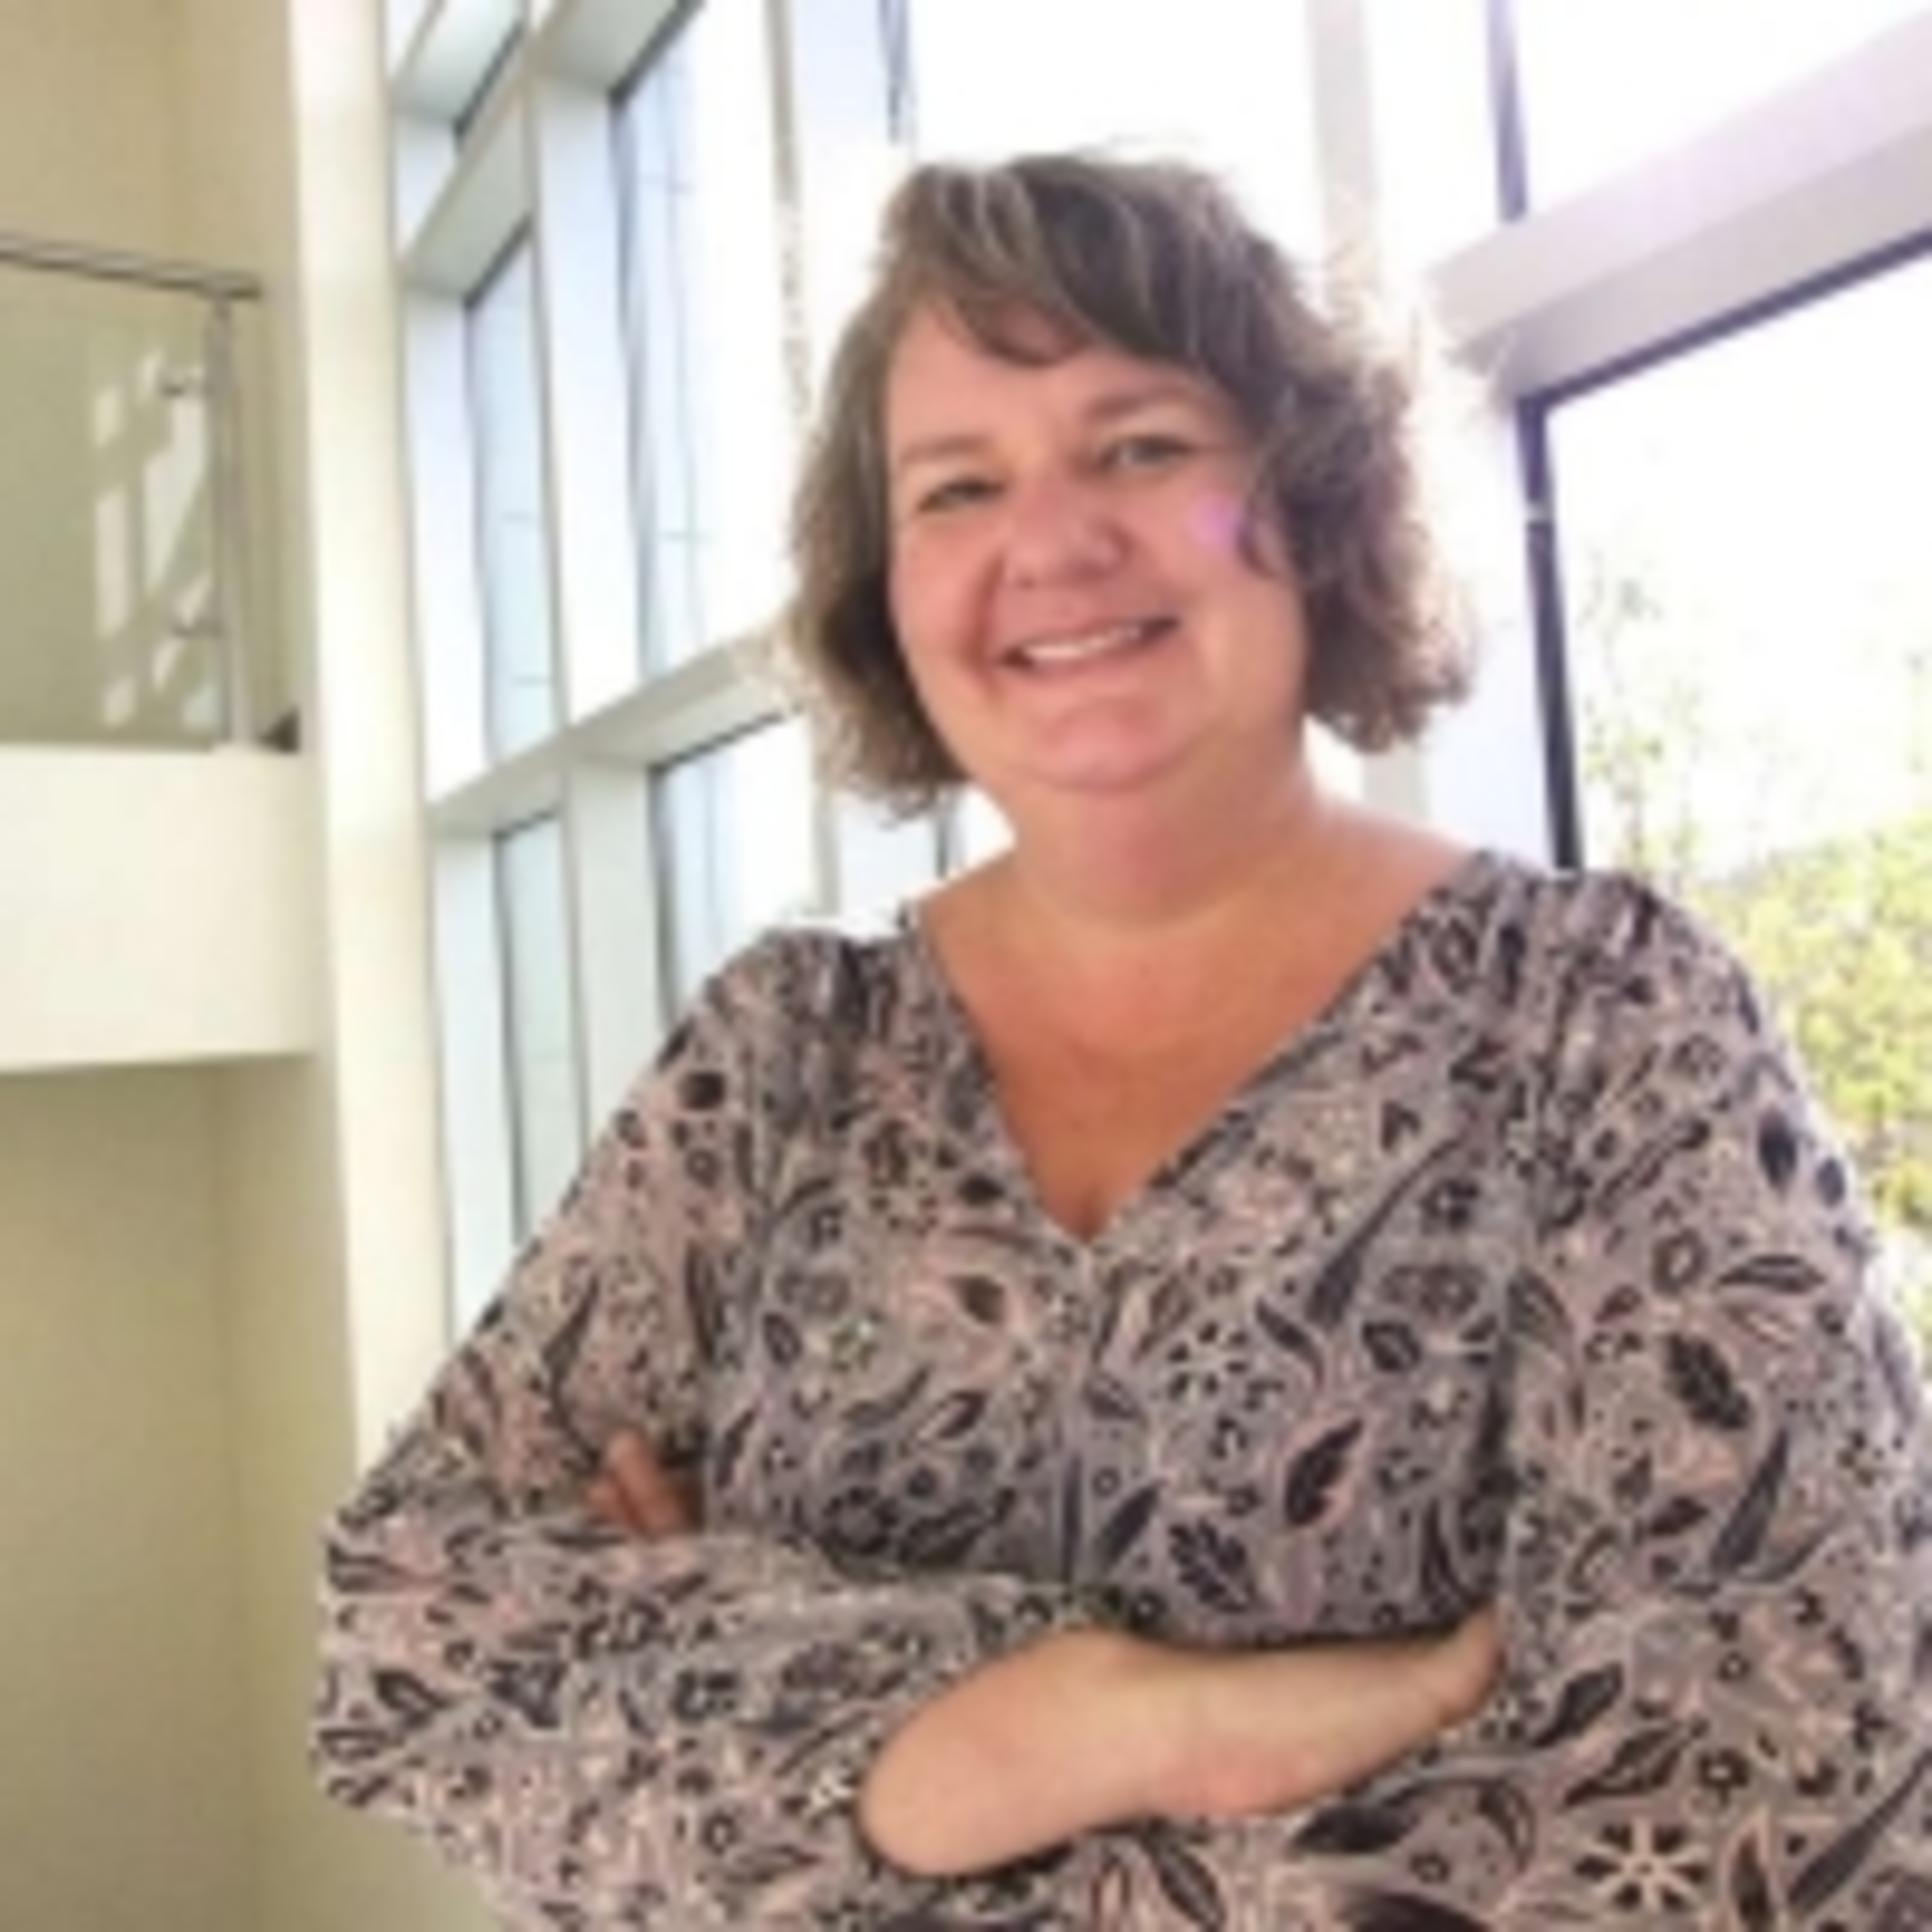 Mental Health Download: Exploring Mental Illness, Suicide, Homelessness and Incarceration - Julie Miller-Cribbs on Why Social Work Matters